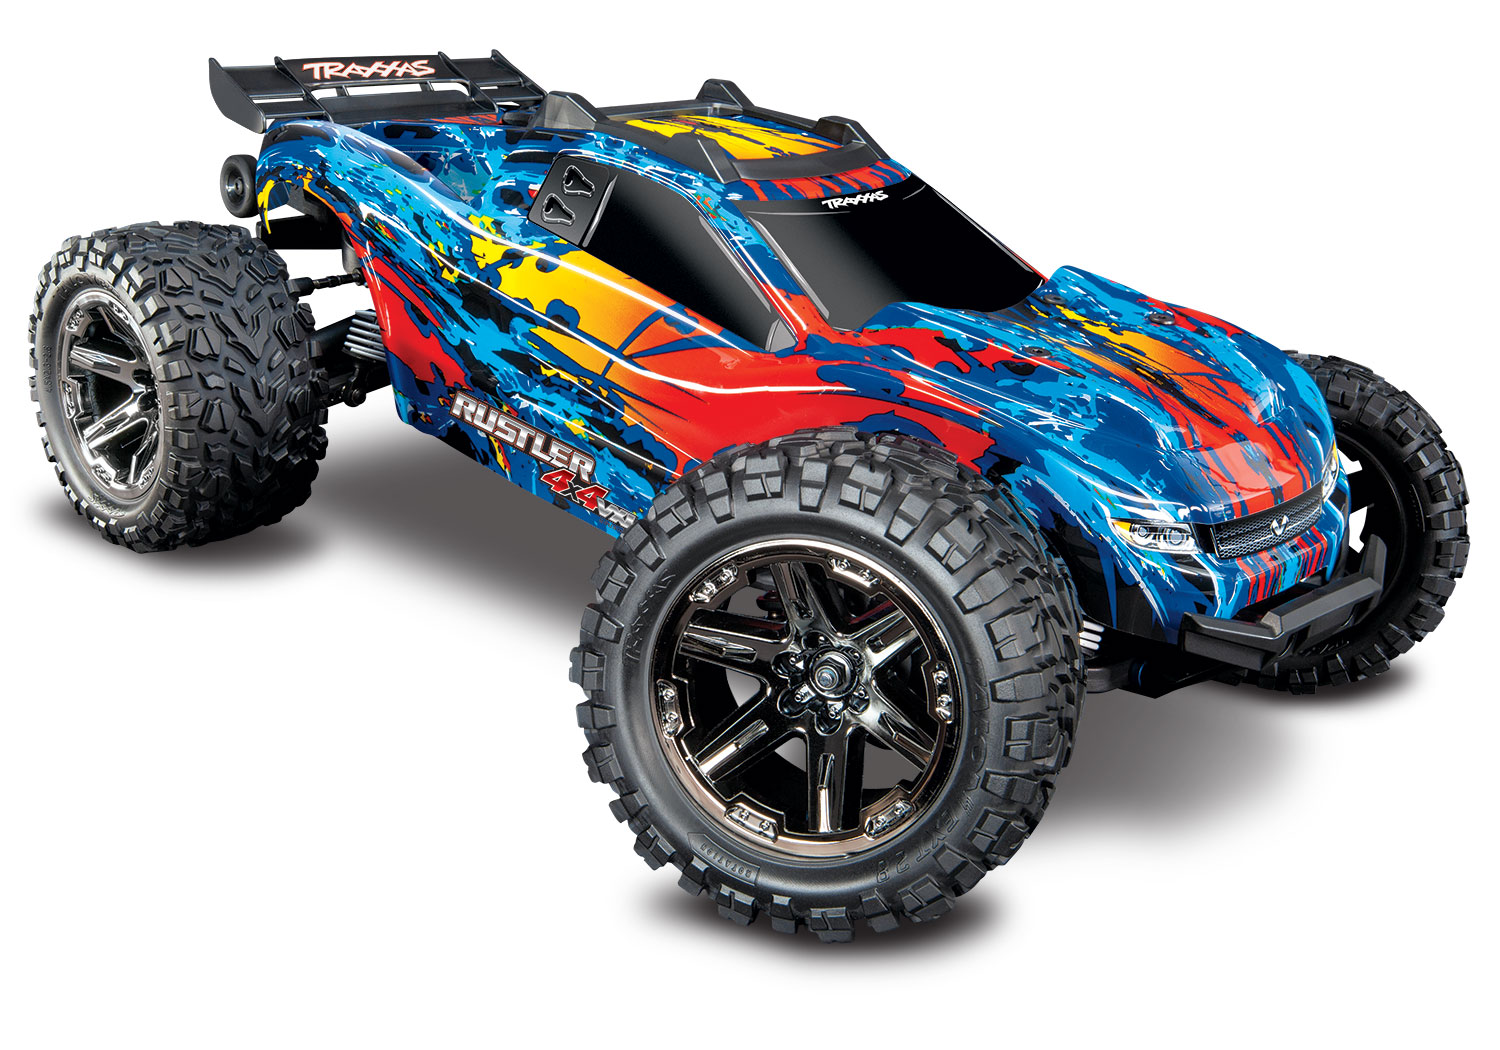 TRXXAS RUSTLER 4x4 Rouge 1/10 VXL Brushless - TSM, TRX67076-4-RED